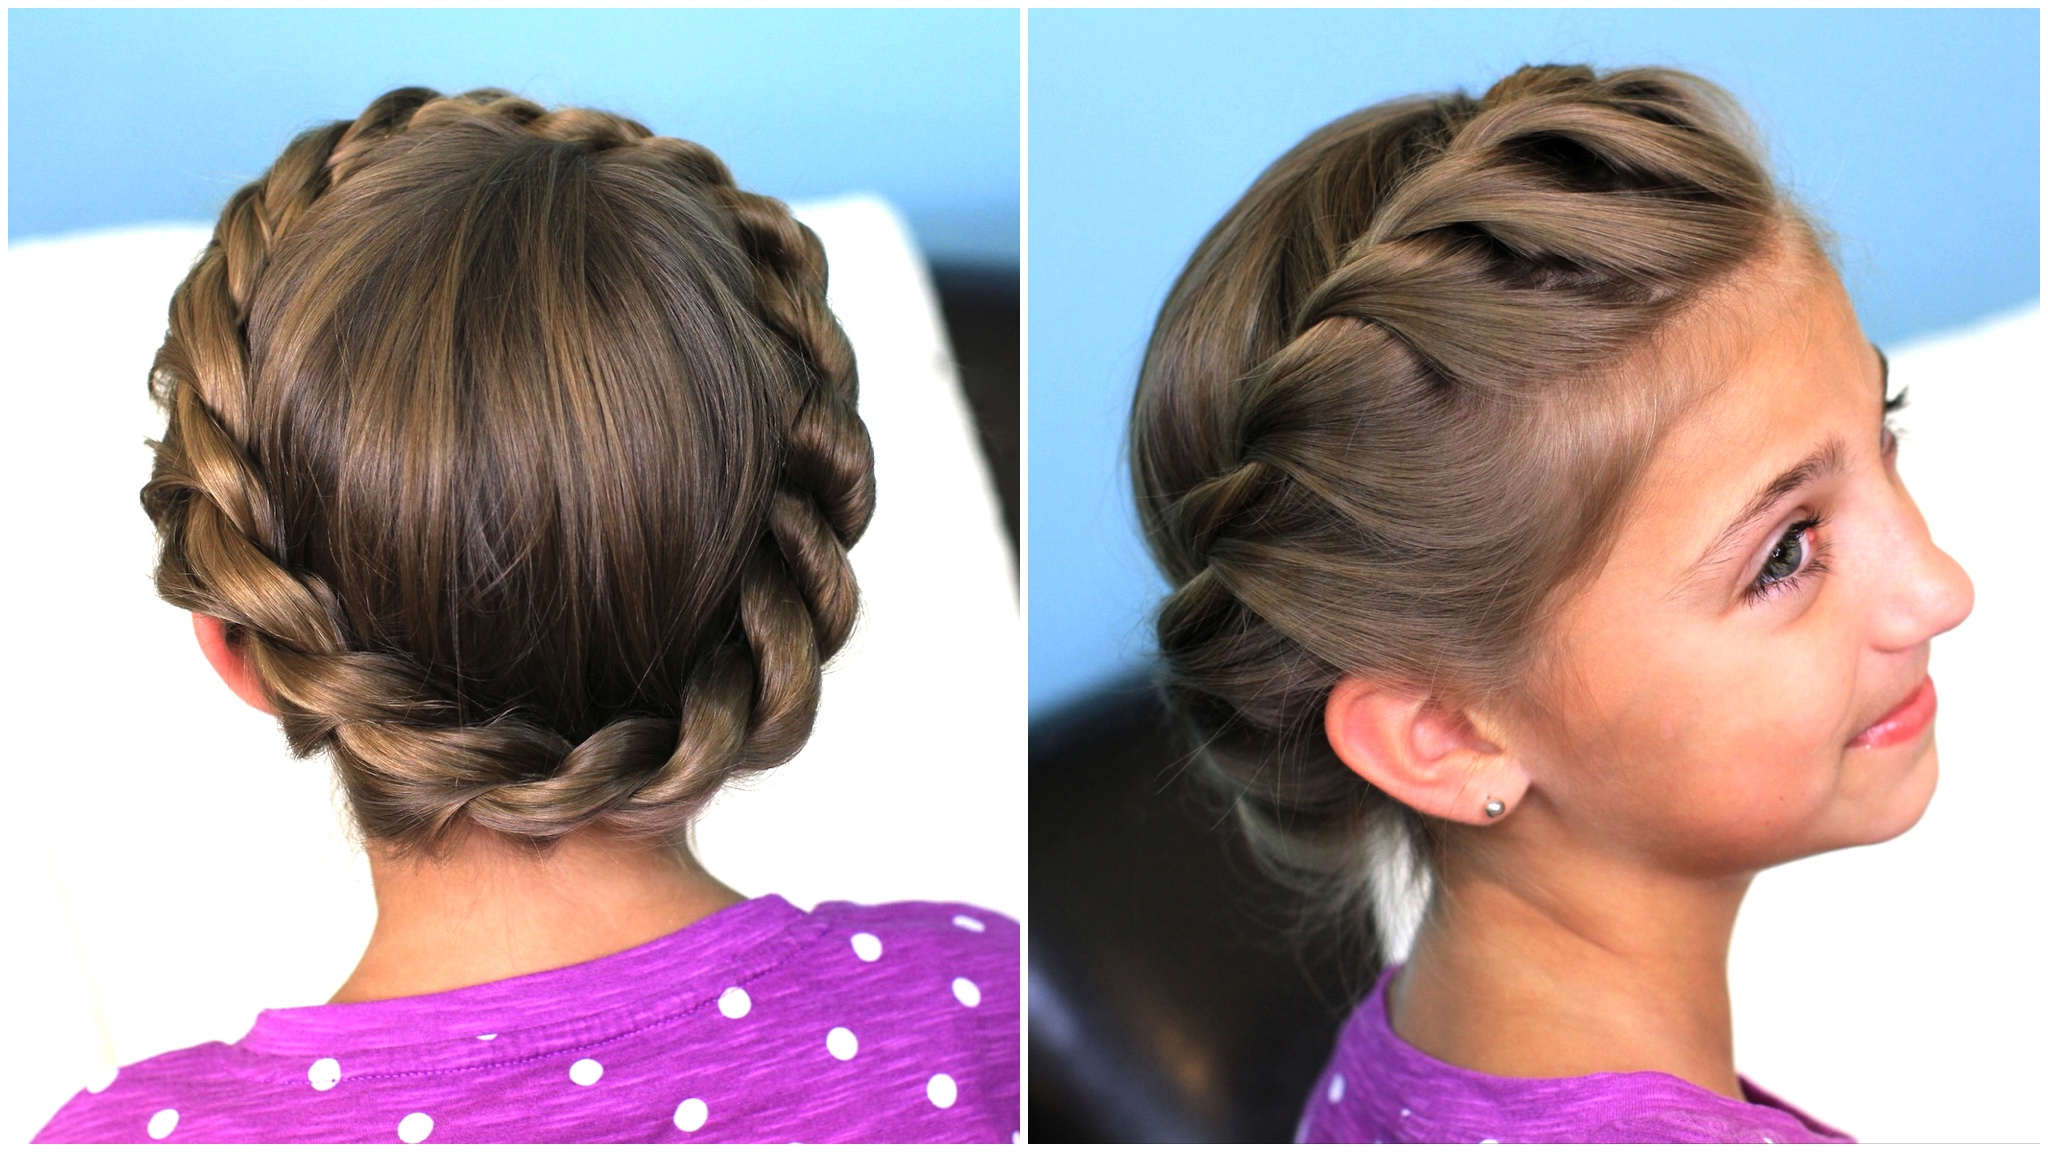 Updo Hairstyles (View 10 of 20)